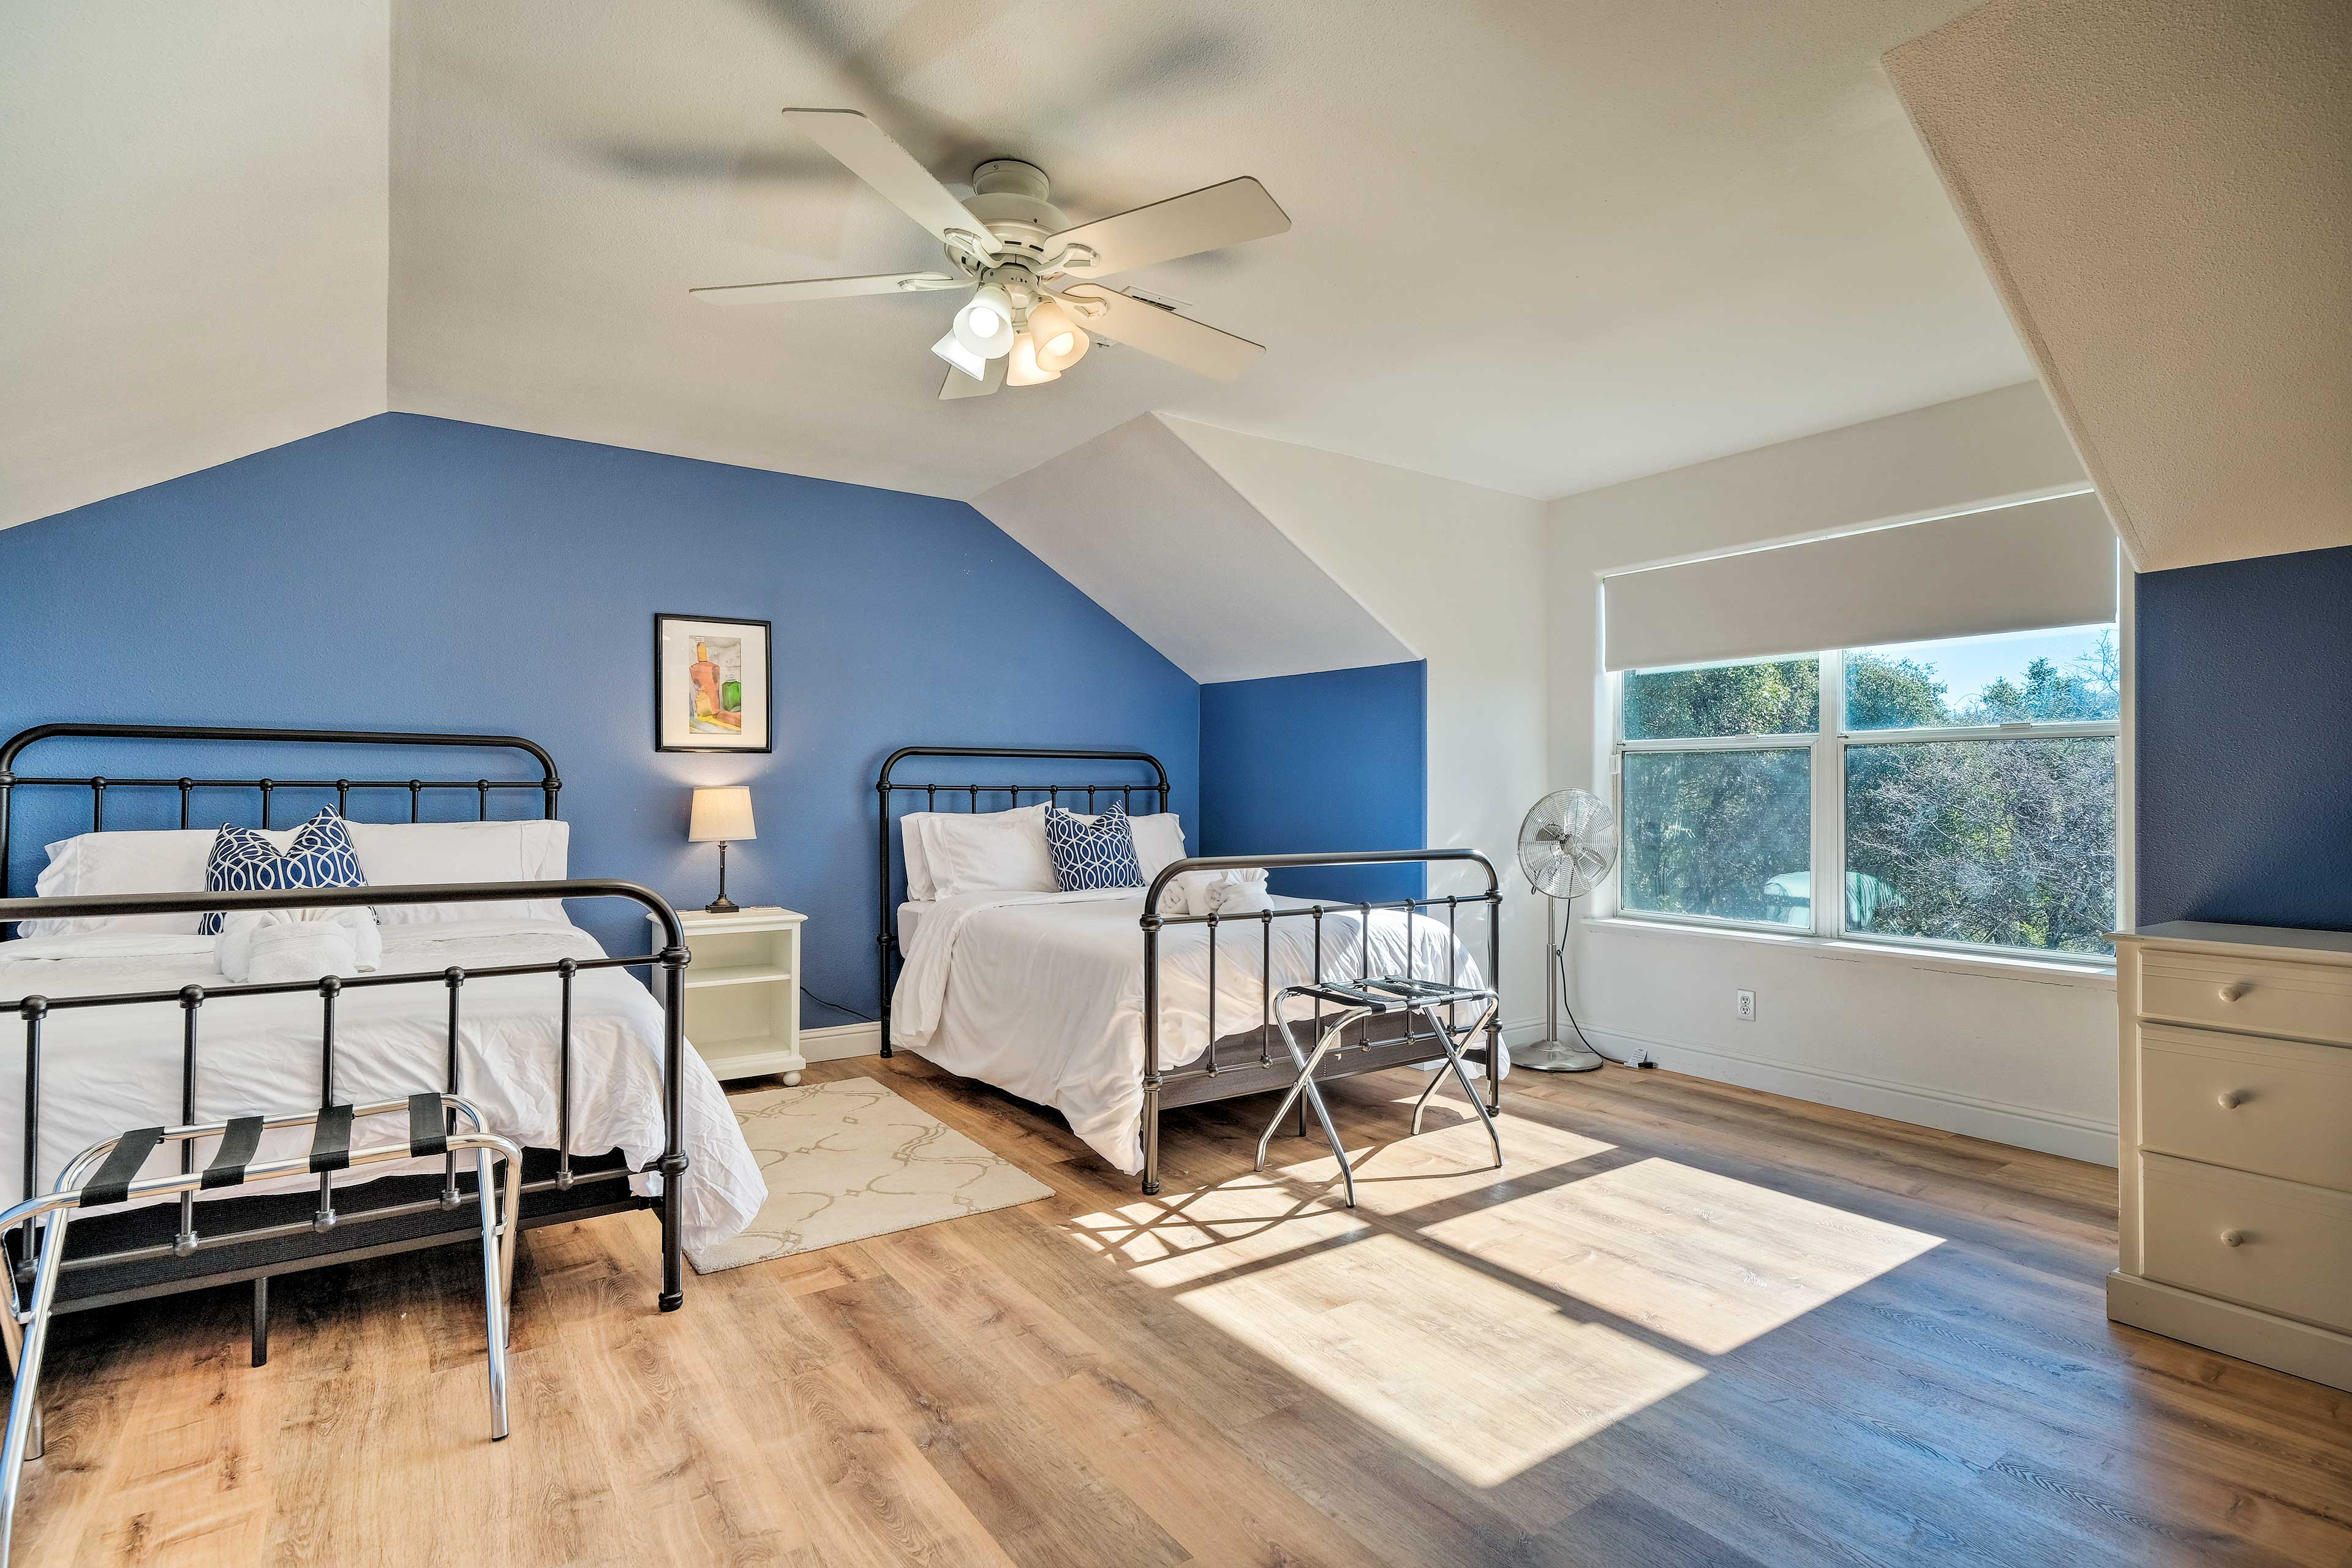 2 full beds sleep up to four guests.